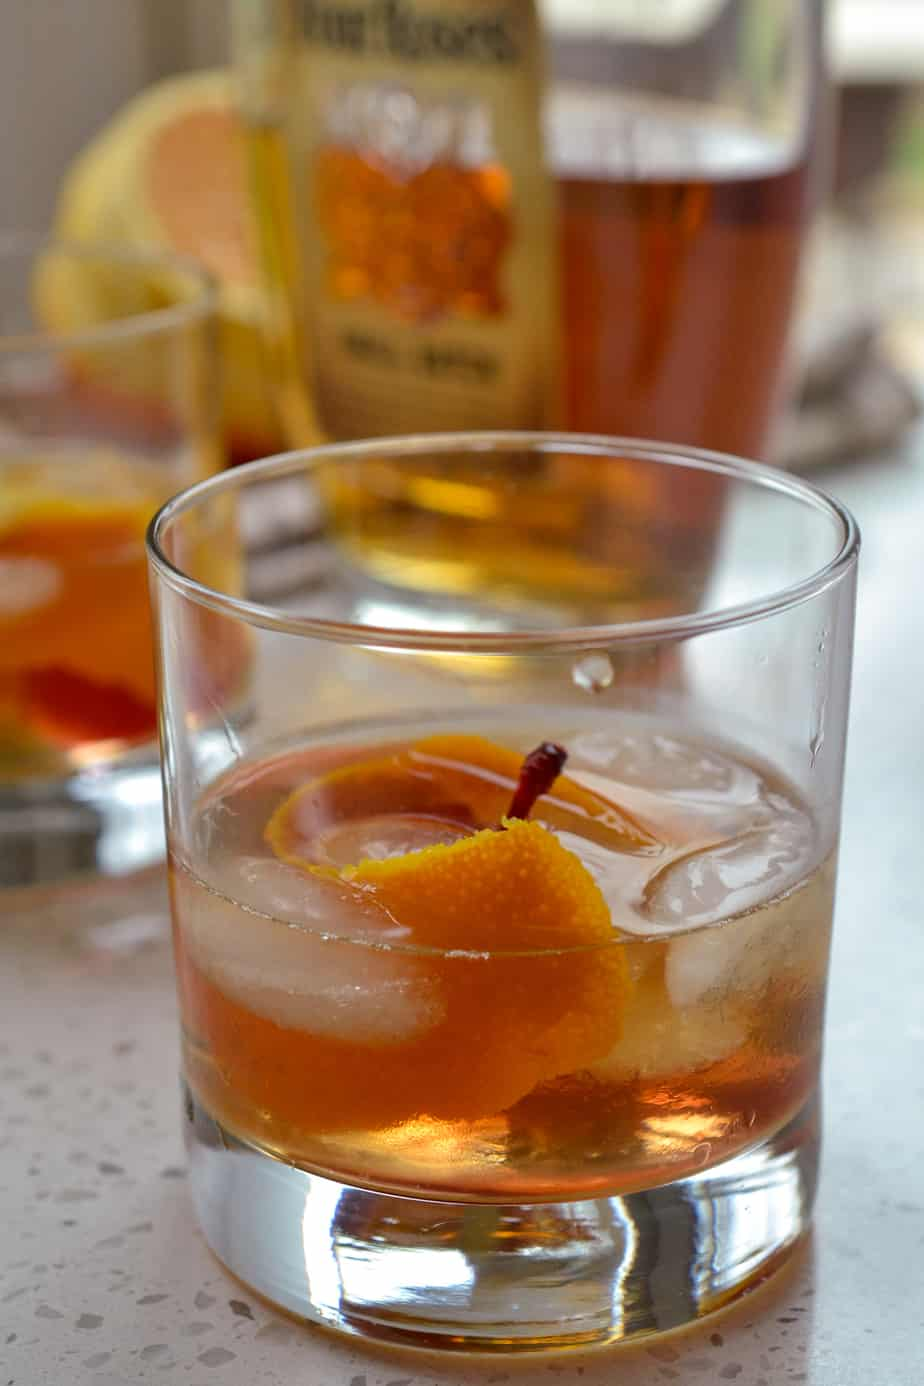 Old fashioned bourbon whiskey cocktail with orange twist and maraschino cherry.